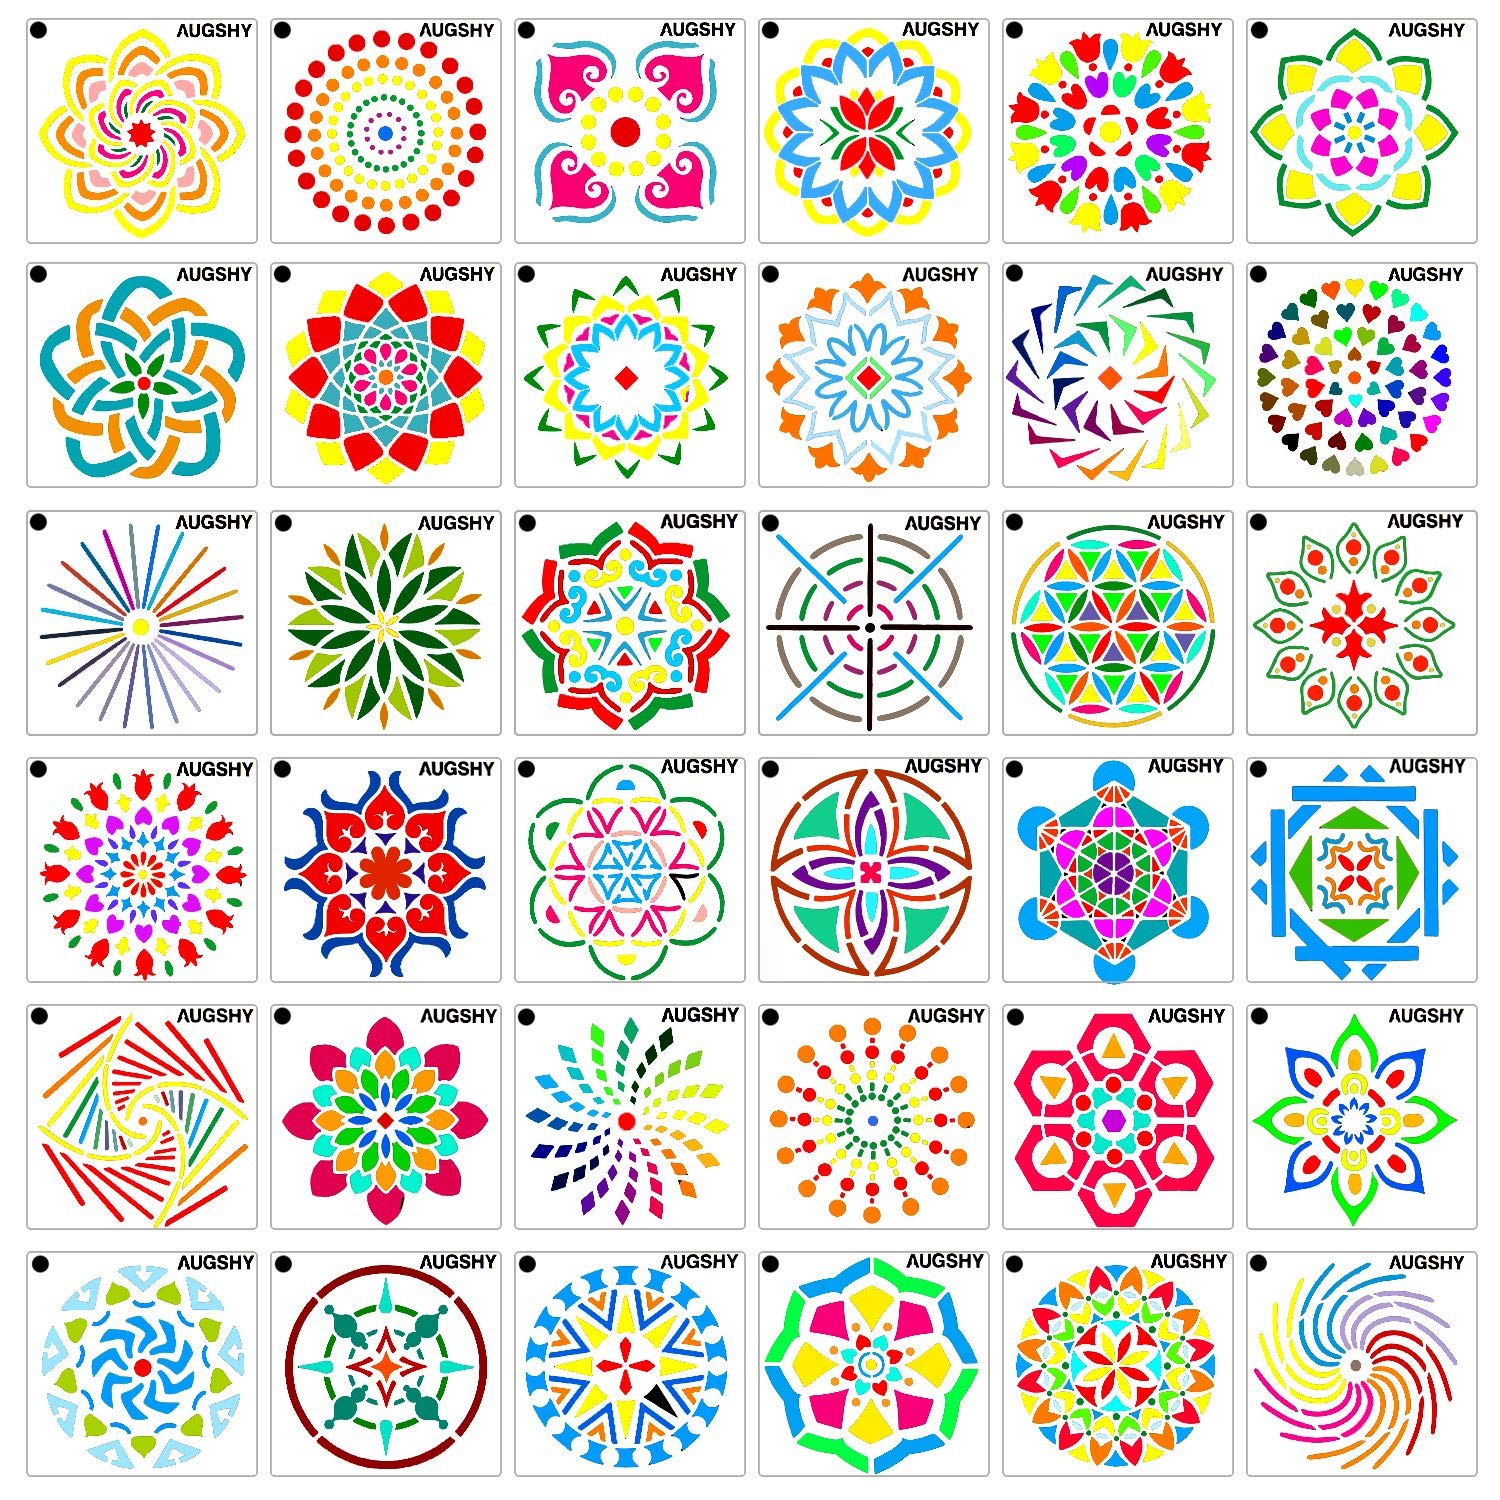 36 Pack Mandala Dot Painting Templates Stencils Perfect for DIY Rock Painting Art Projects (3.6x3.6 inch) by Augshy